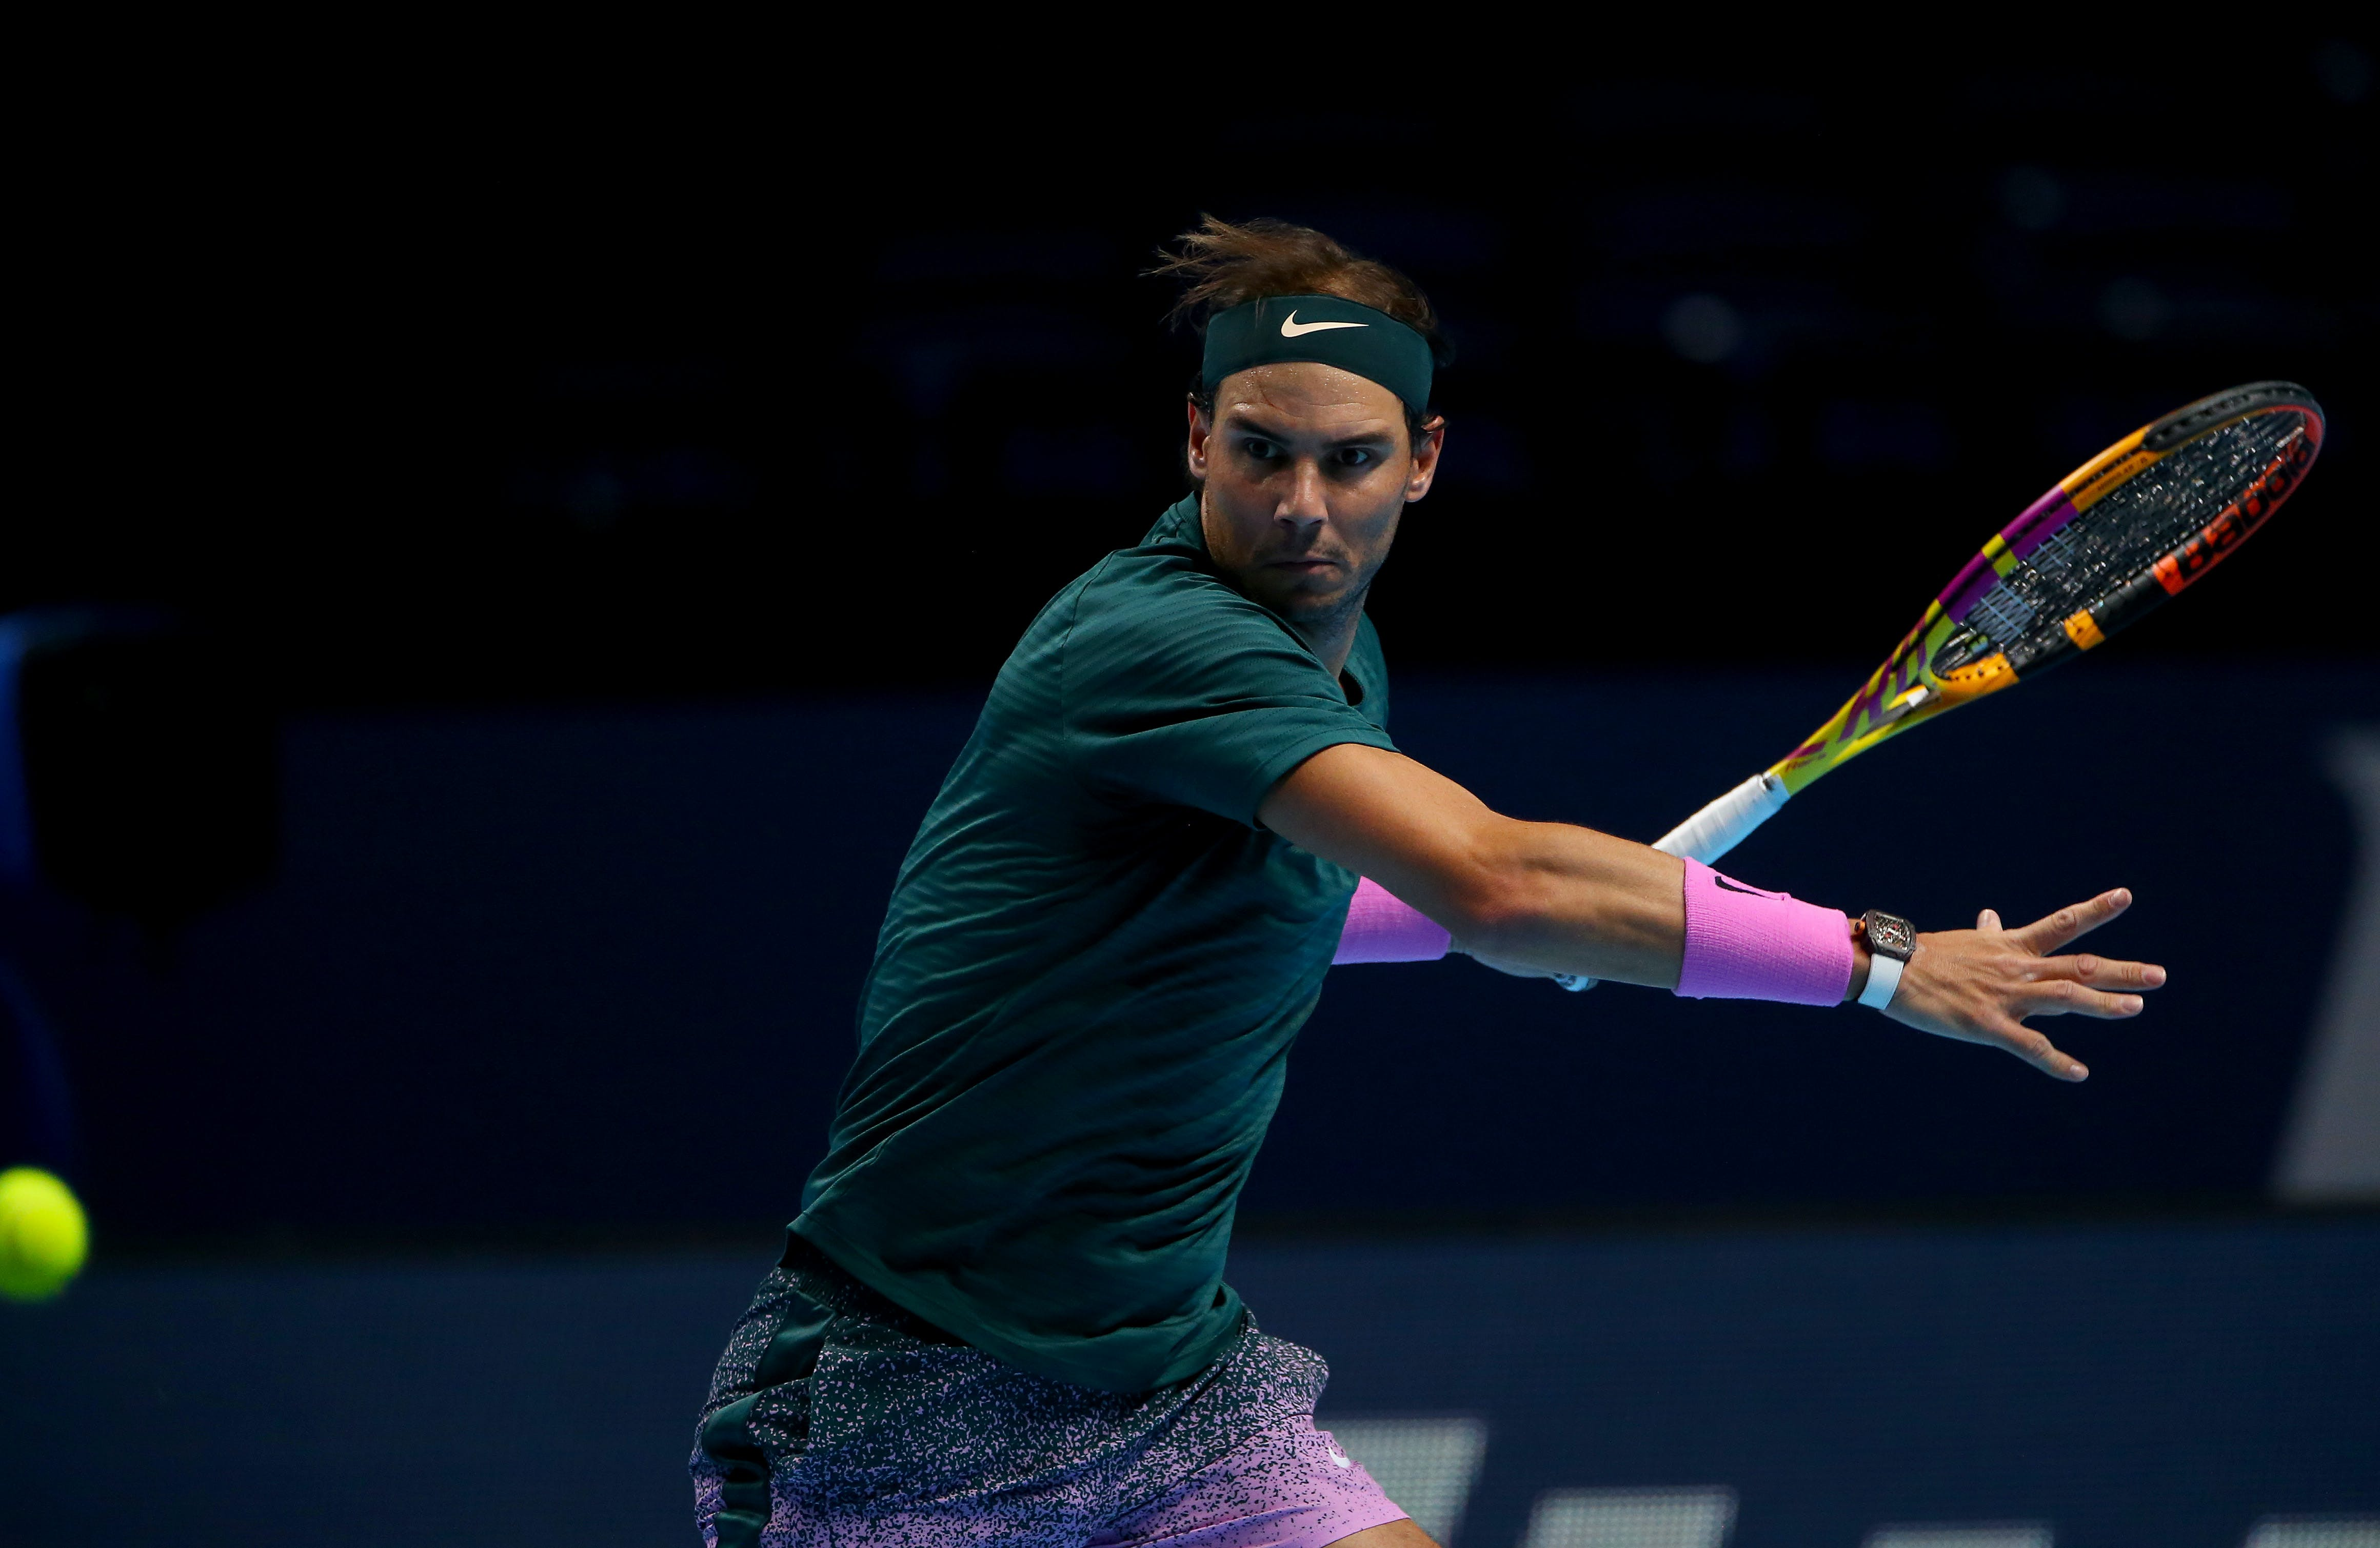 Rafael Nadal about to hit a forehand during his match against Stefanos Tsitsipas during the ATP Finals 2020